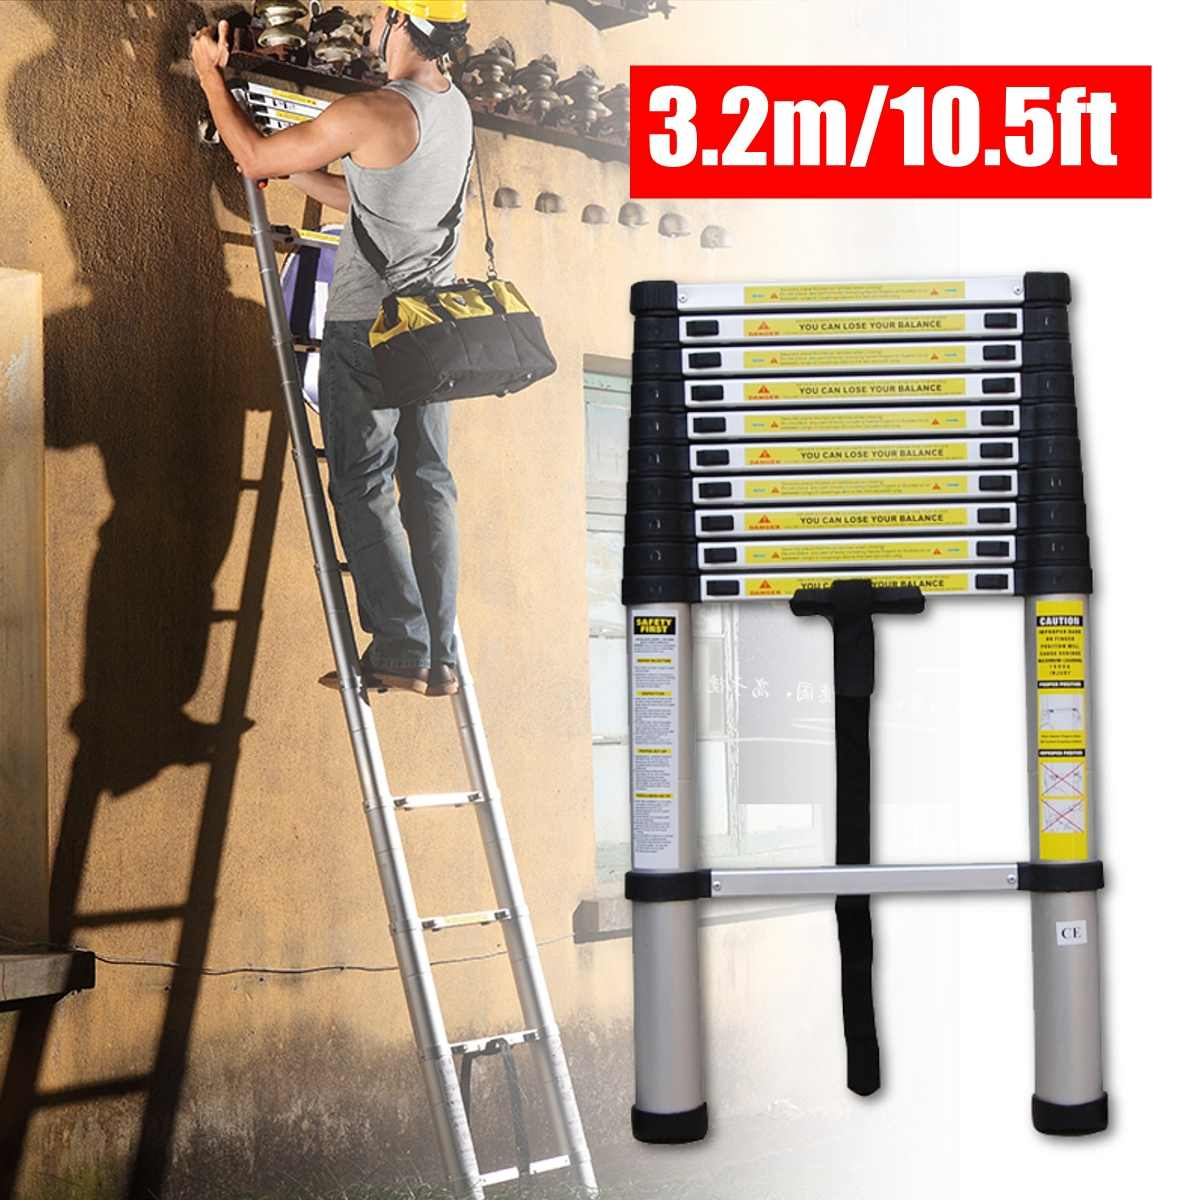 3.2m 10.5ft Aluminum Multi-Purpose Extention Ladder Telescopic Stepladders Lightweight Portable Household Outdoor 330lbs